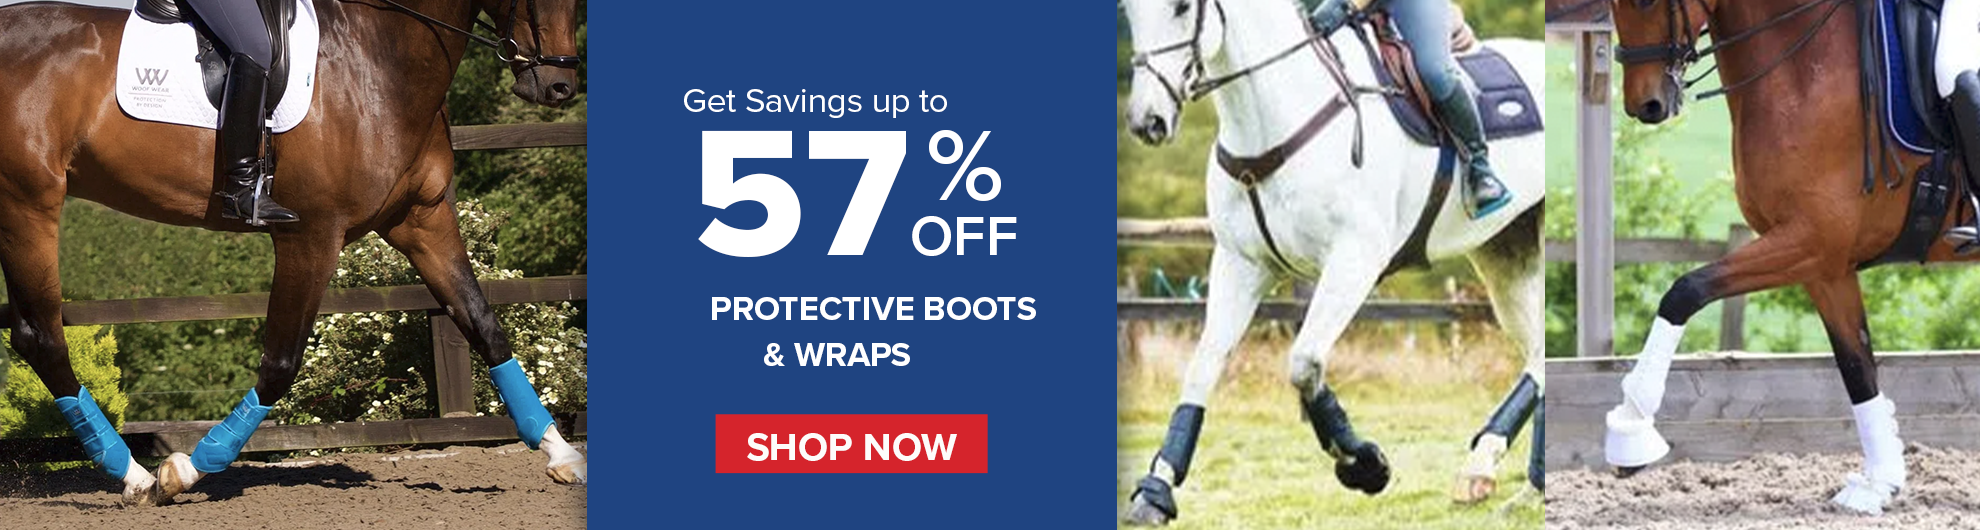 Protective Boots and Wraps on Sale on Bit of Britain